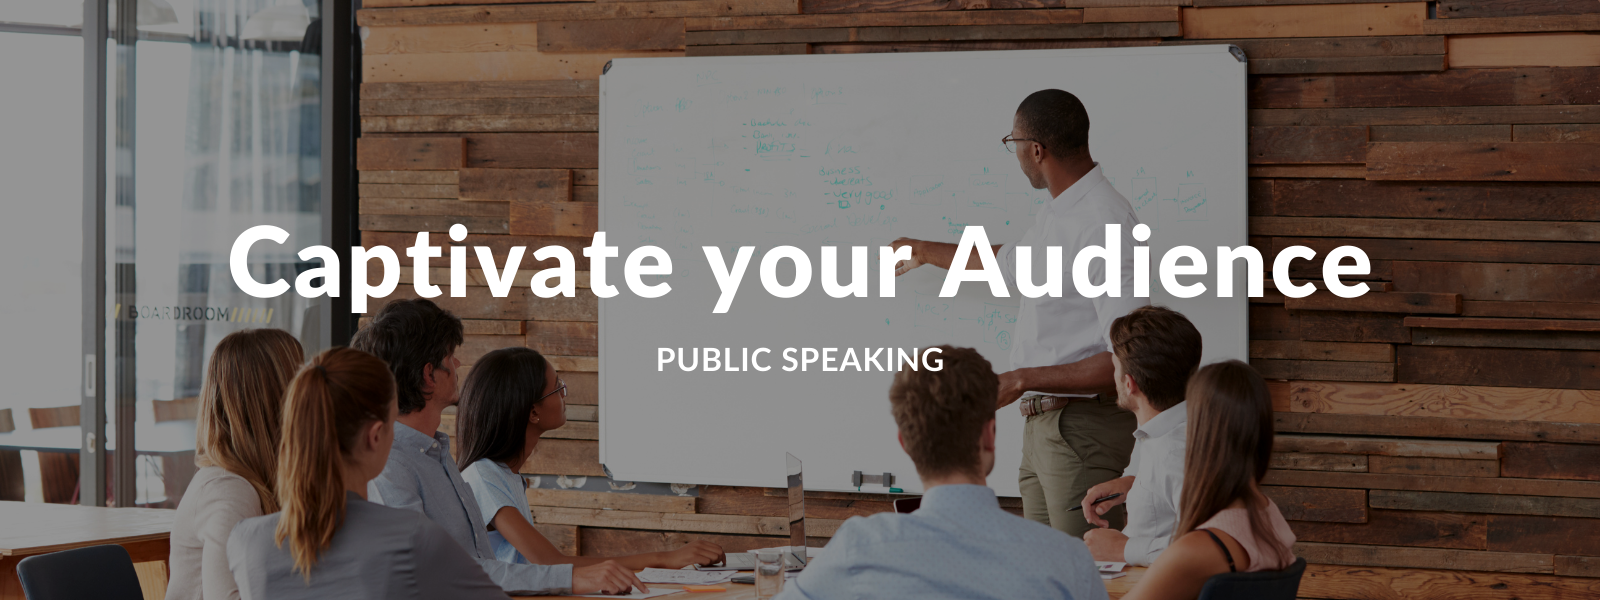 Tips for Public Speaking - Captivate your Audience - Talaera Business English blog